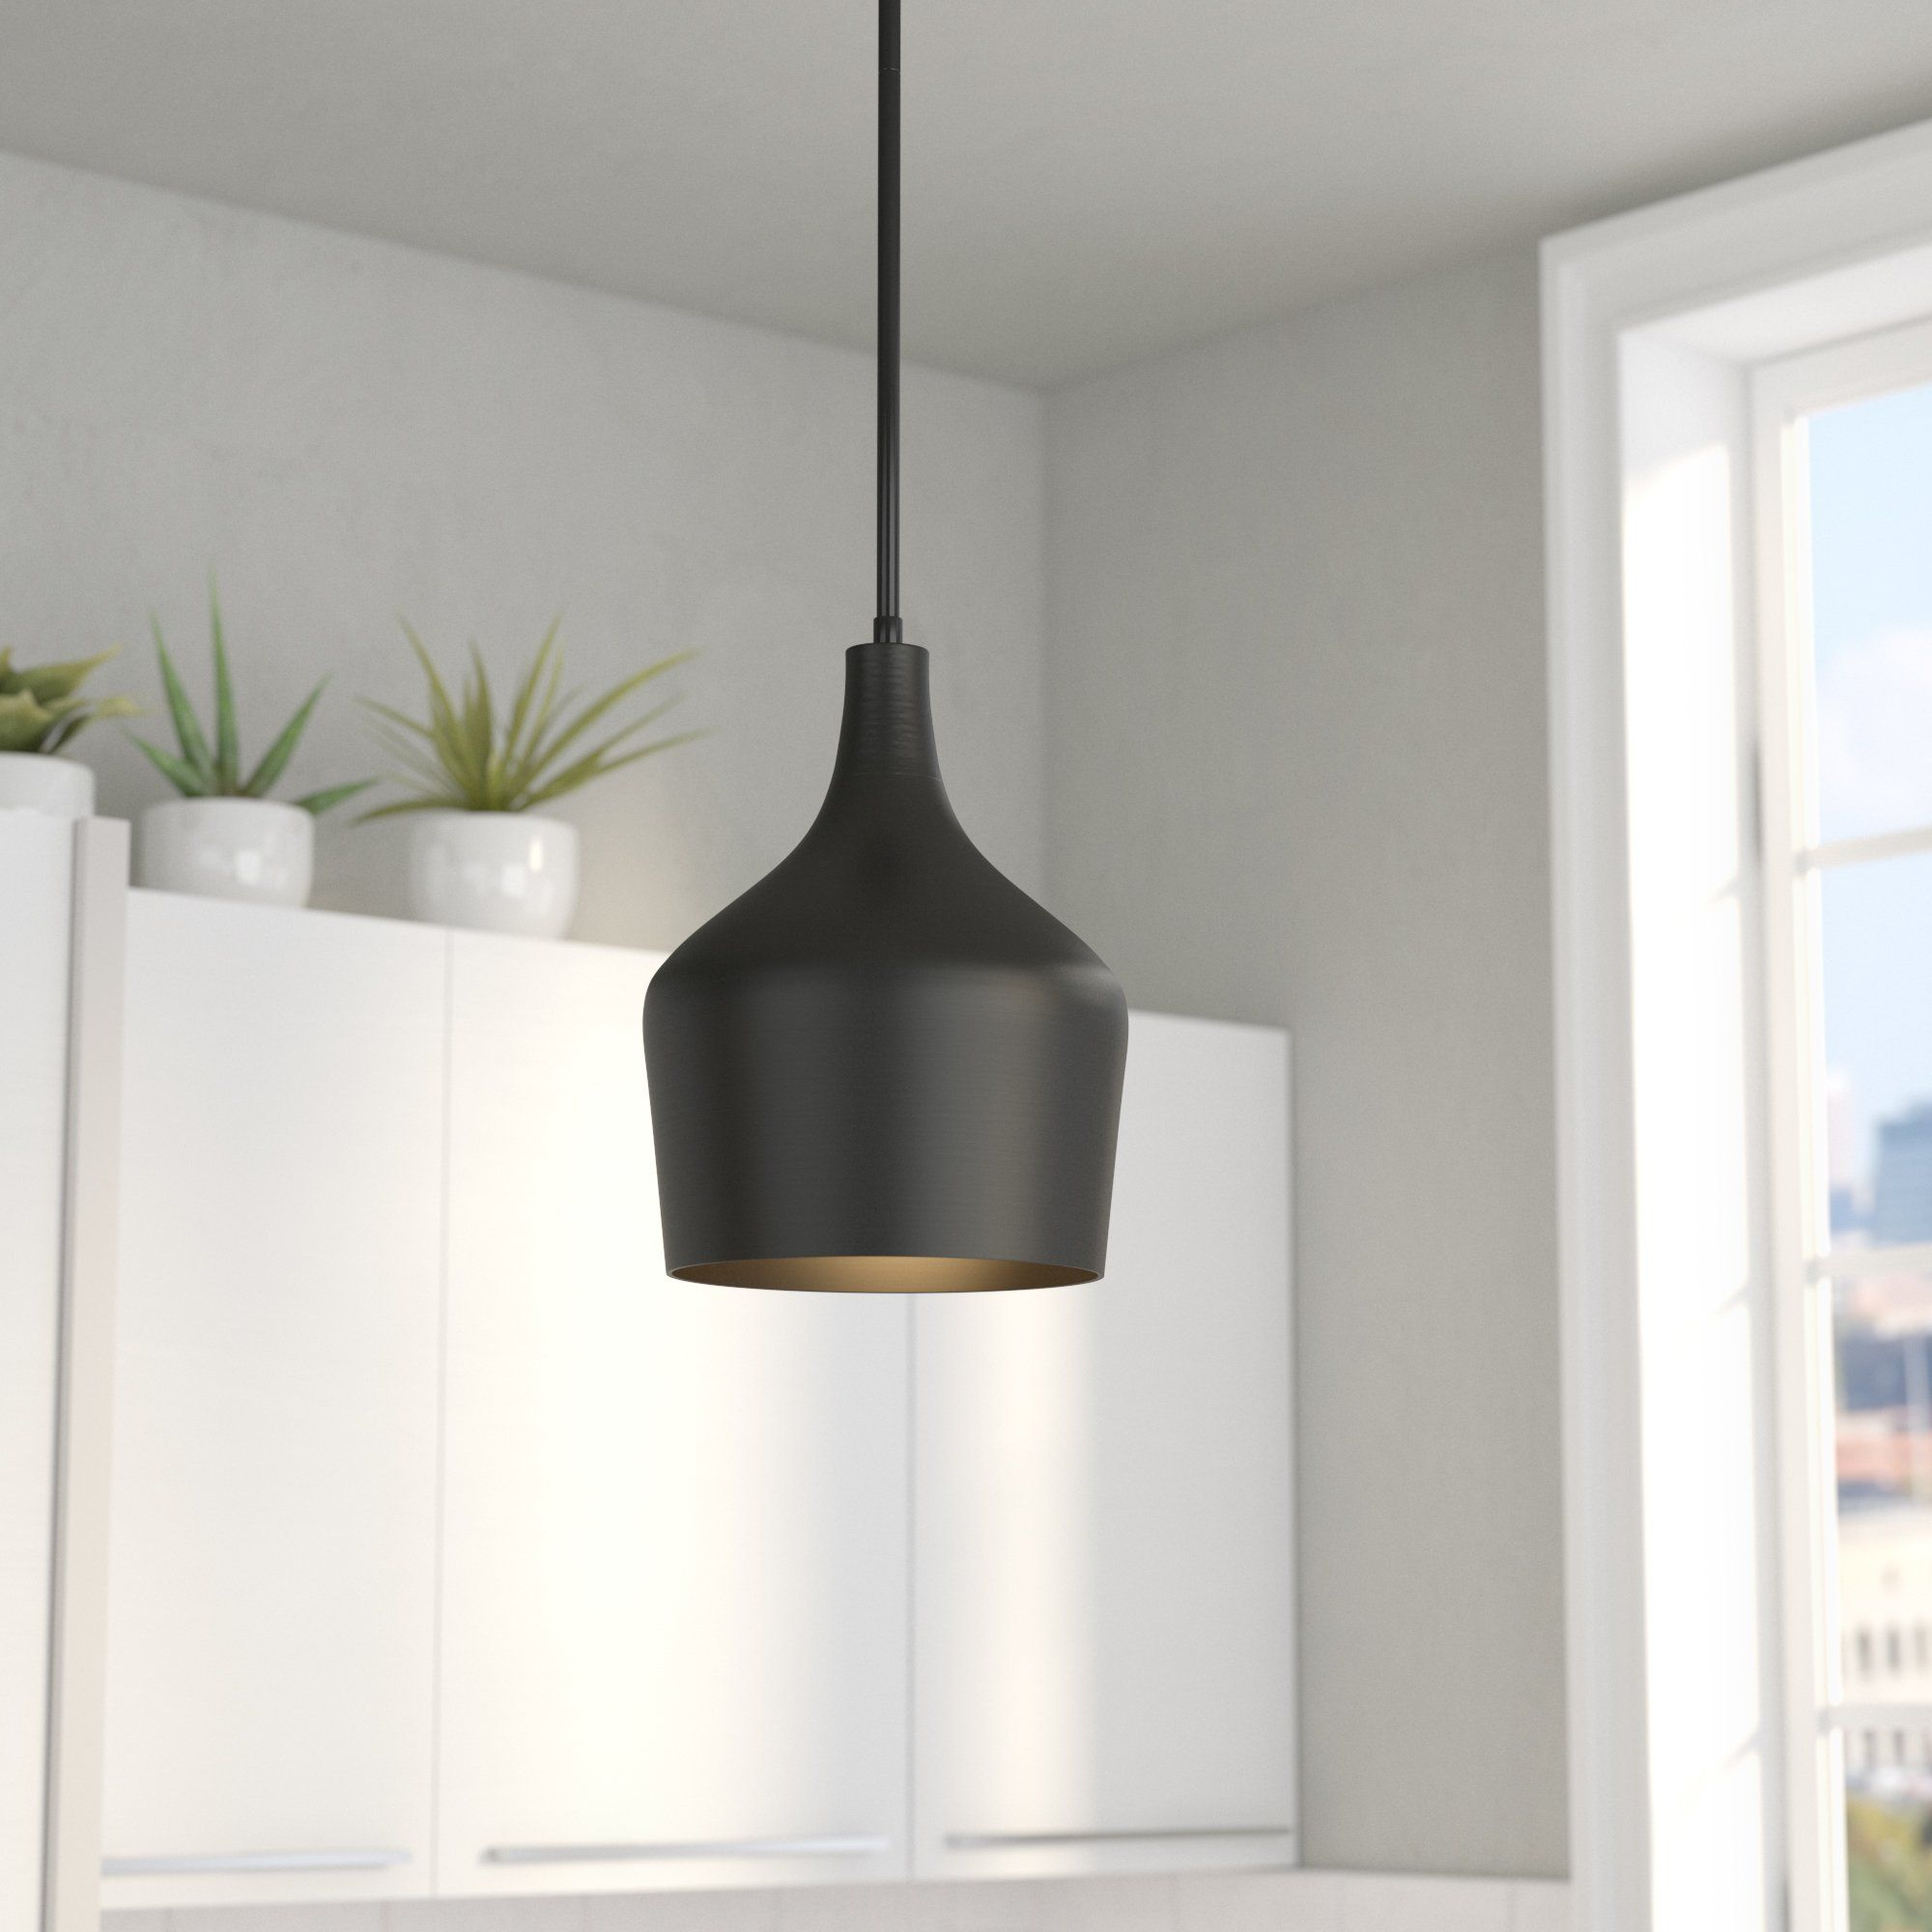 Knoxville pendant light birch lane Ŀıɢһṭ ṭһє ẇåʏ pinterest